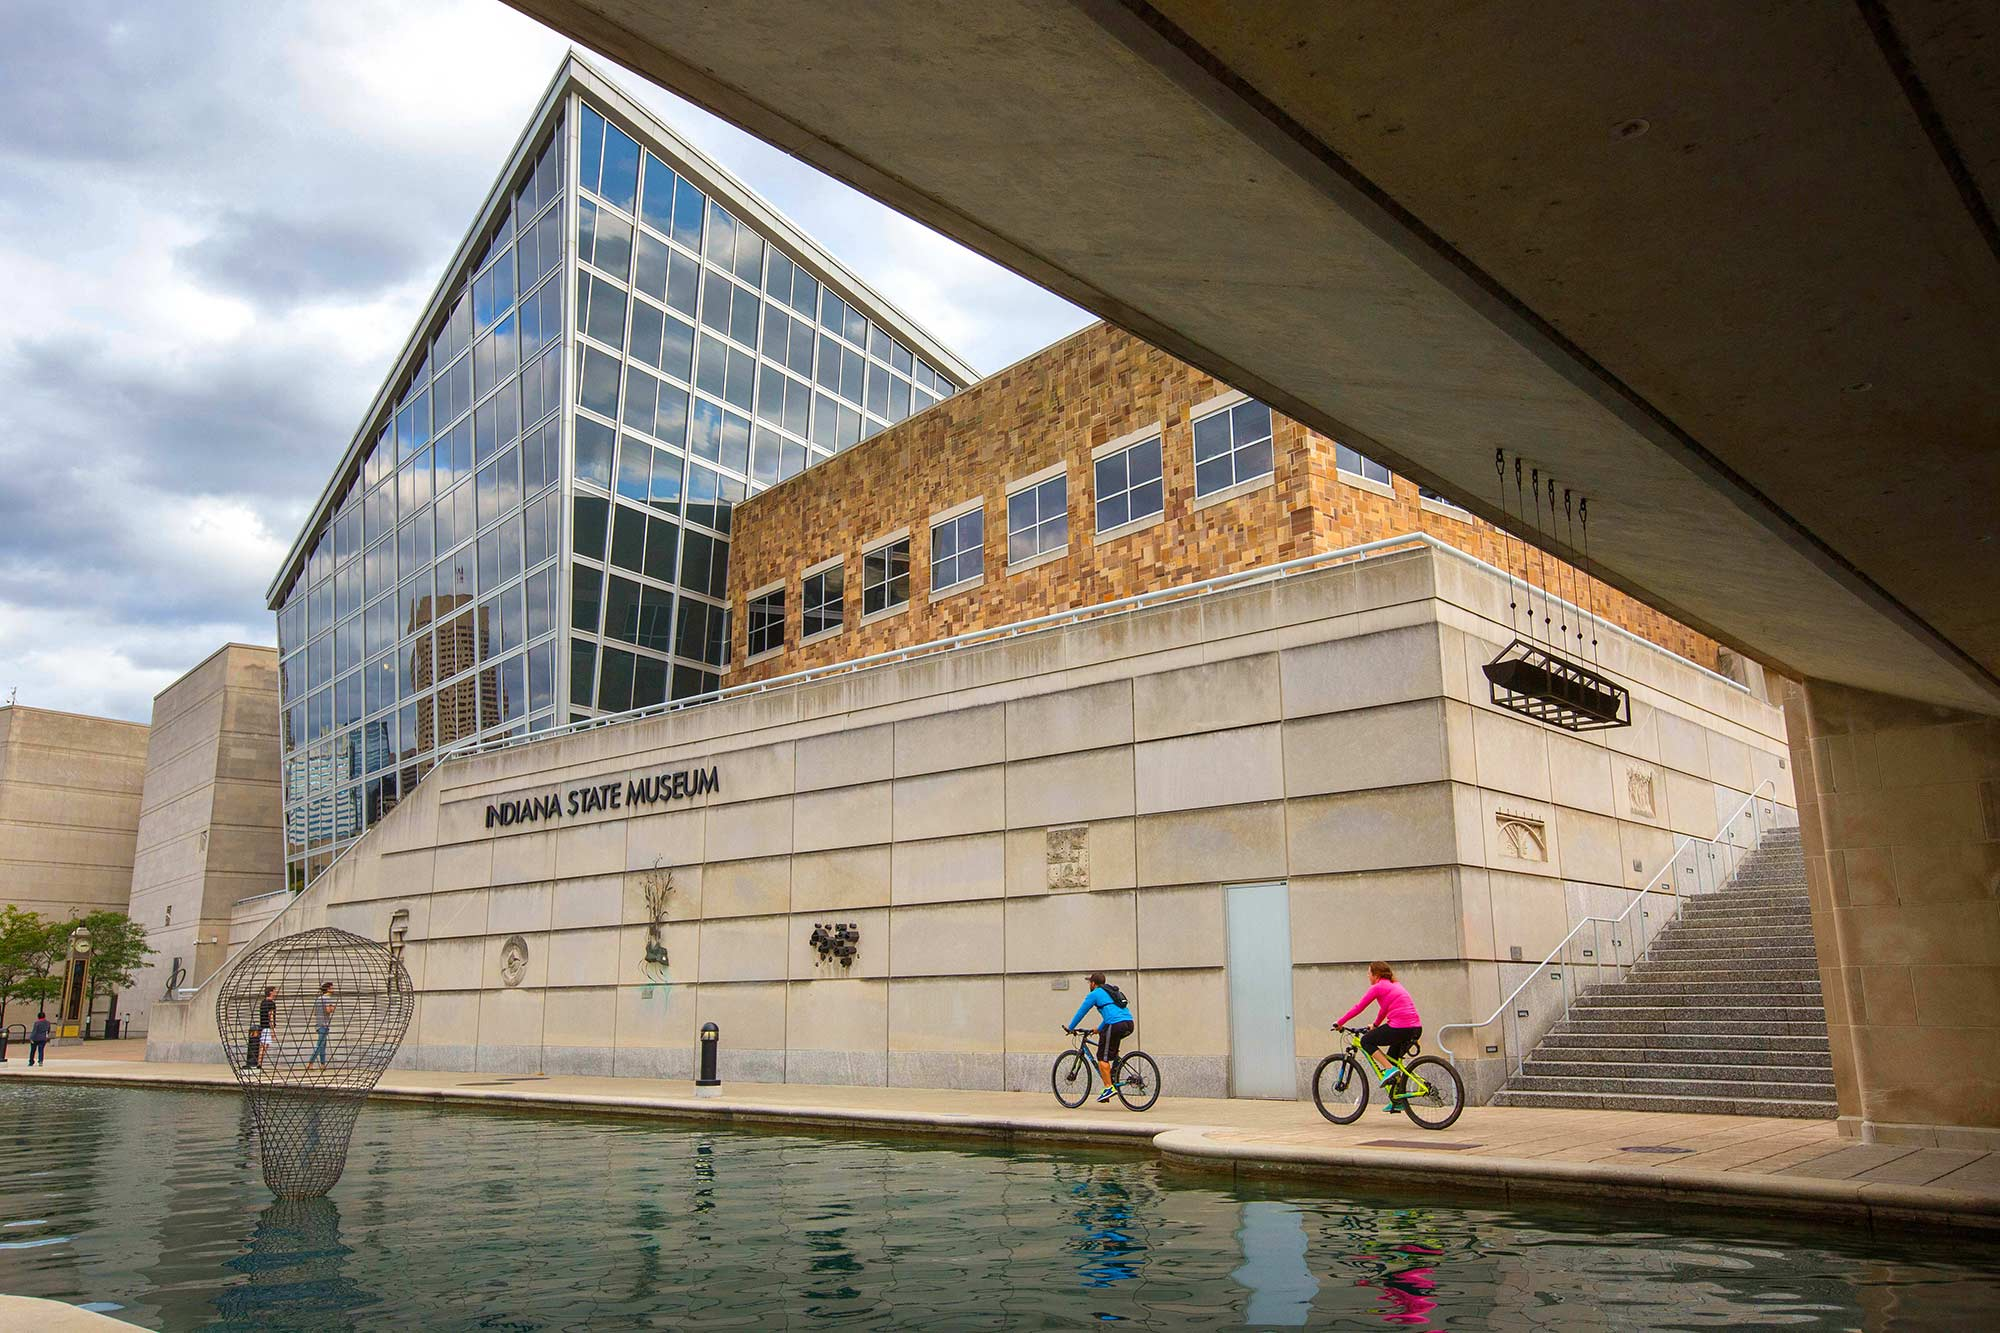 Indiana State Museum, Indianapolis, IN - 8/25/15